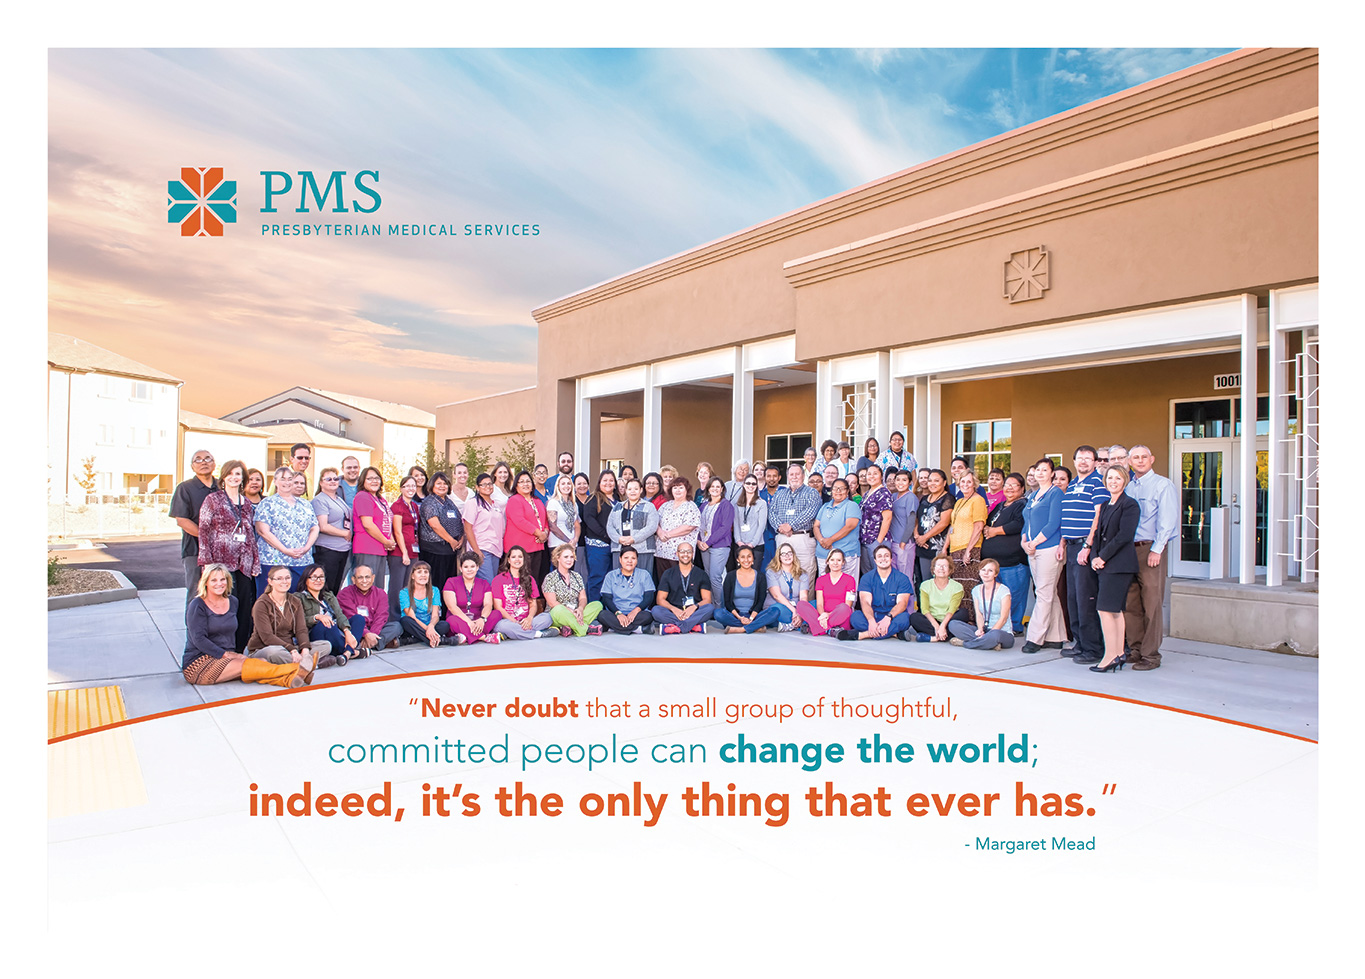 pms group photo